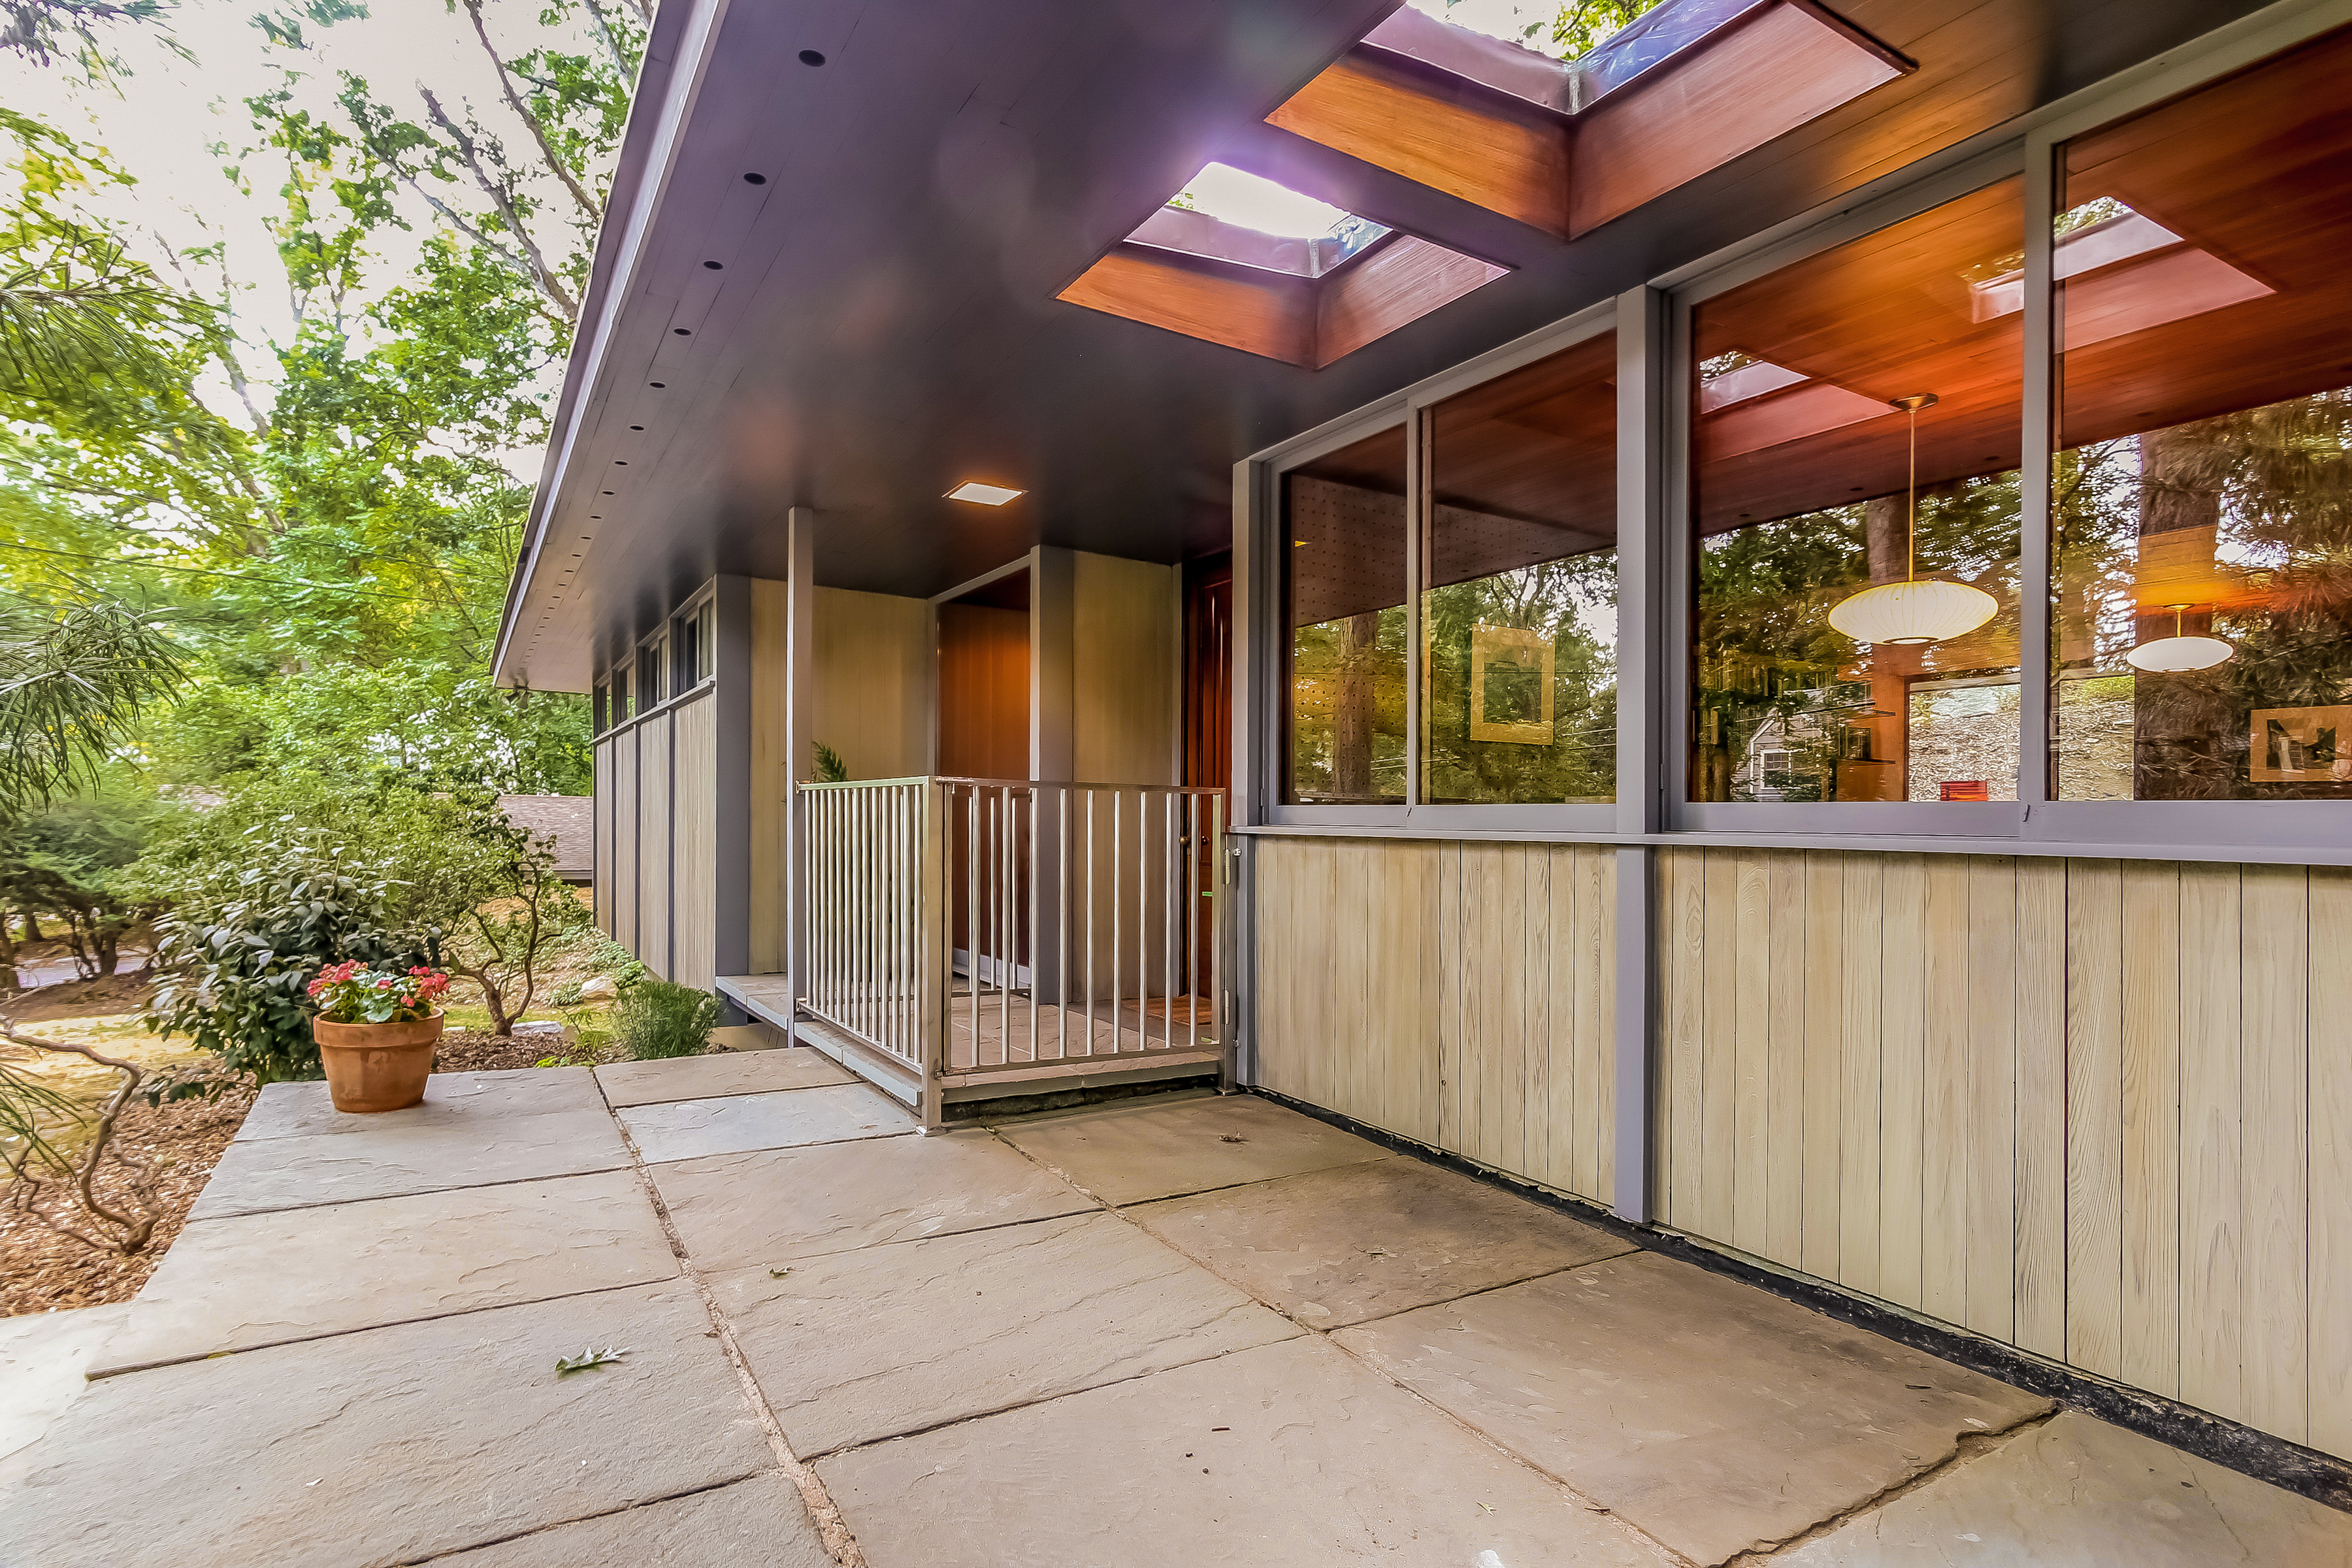 hastings on hudson buddhist single men Hire the best door services in hastings on hudson,  compare quotes with a single request  we have top notch men that give  see more get a quote .